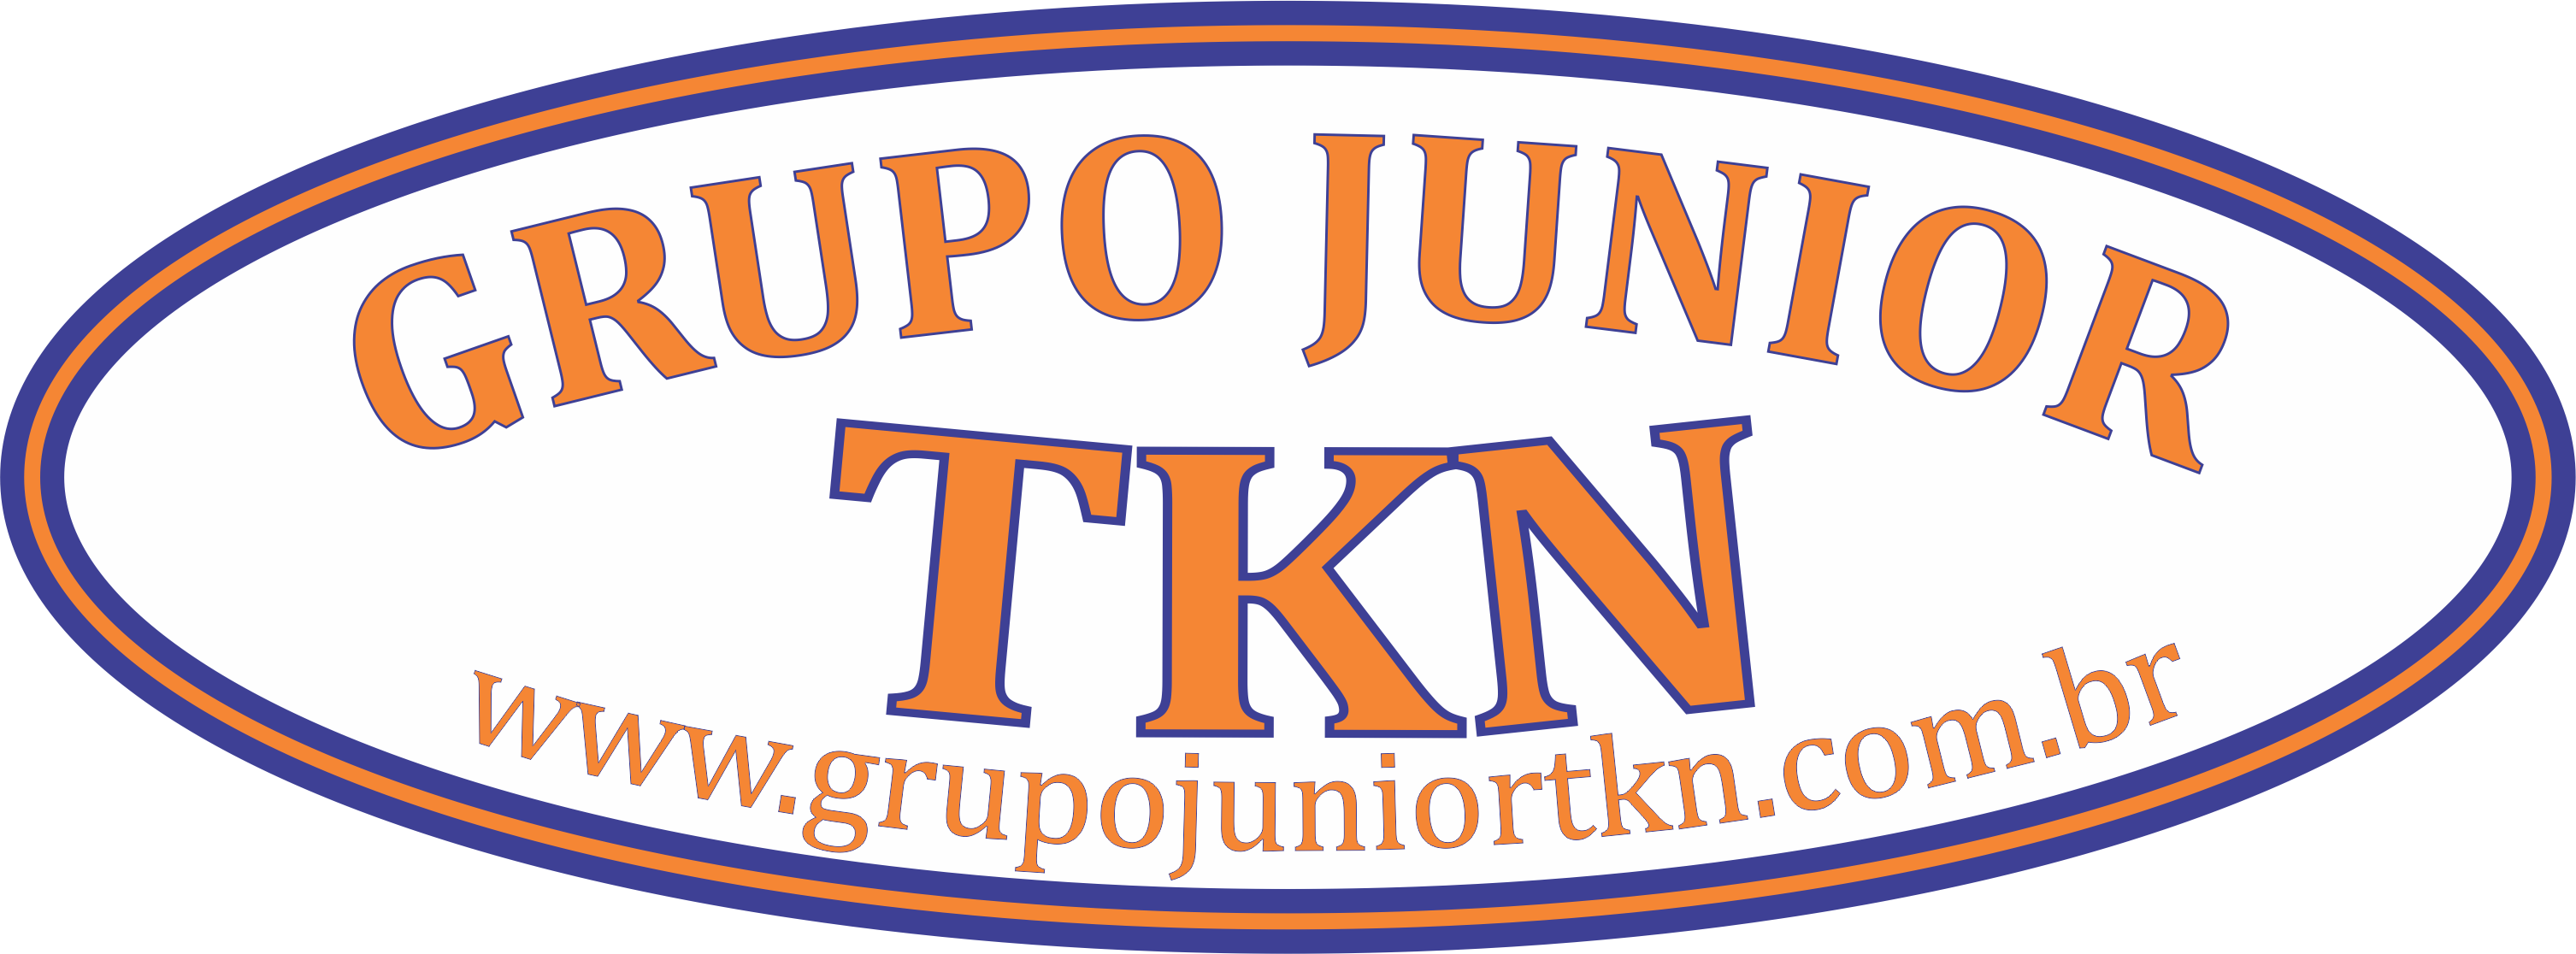 GRUPO JUNIOR TKN